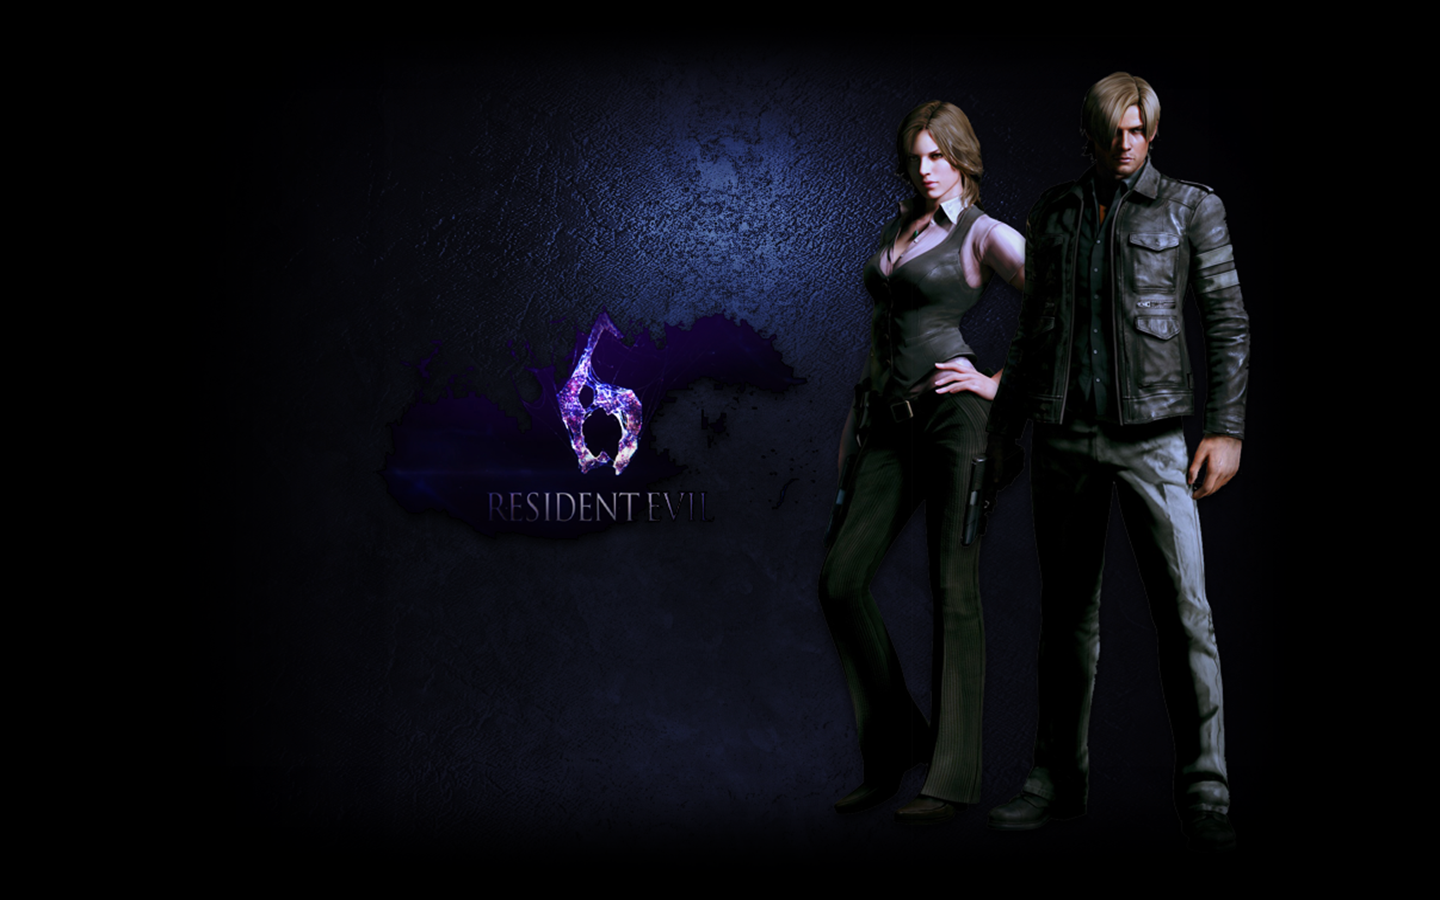 Resident Evil 6 Wallpaper By Pvlimota On Deviantart